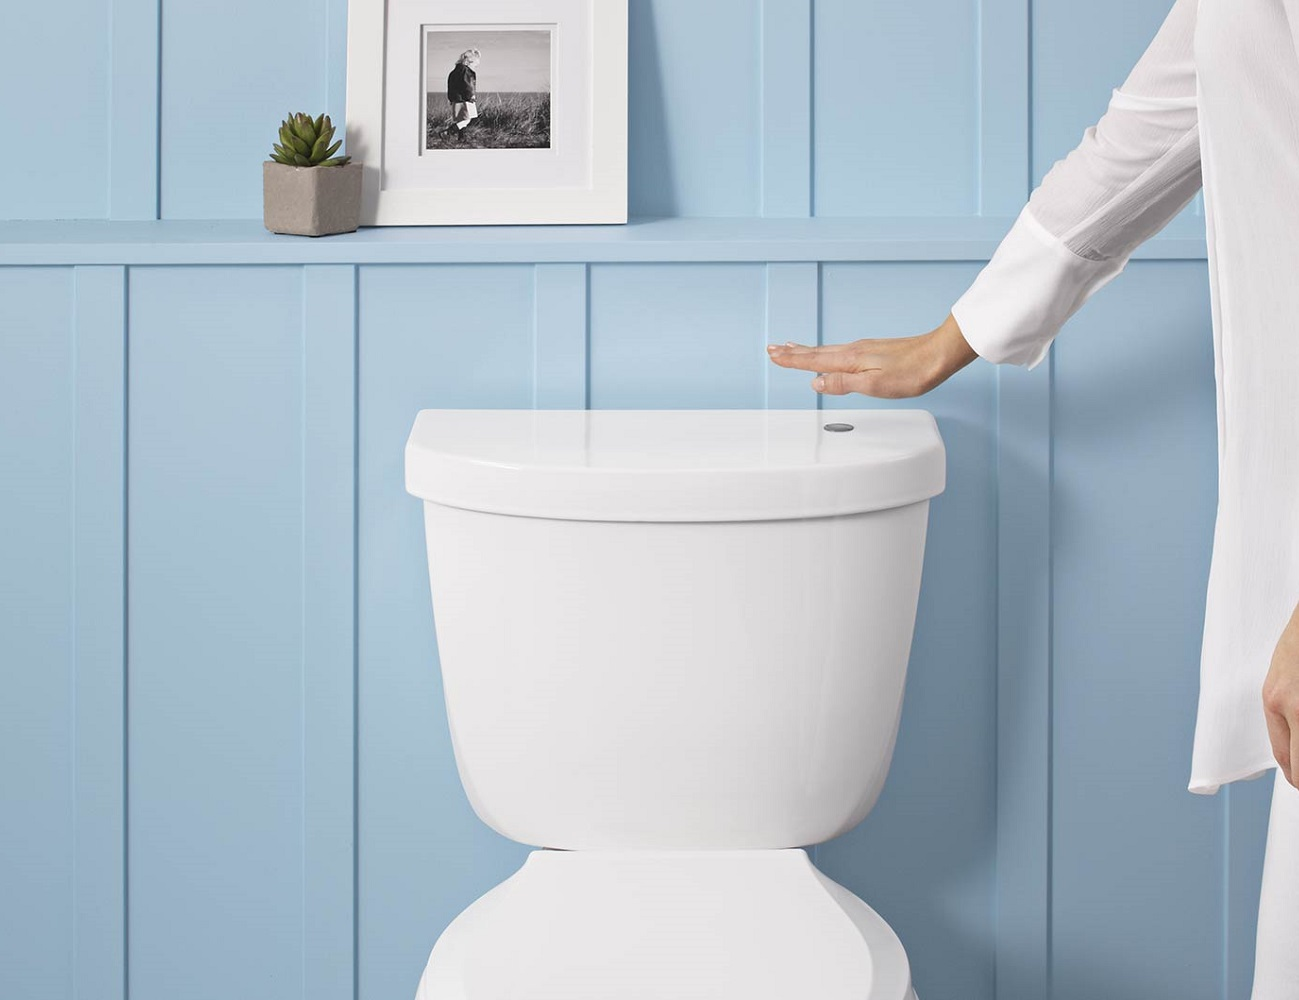 kohler touchless toilet touchless toilet flush kit by kohler 187 gadget flow 31459